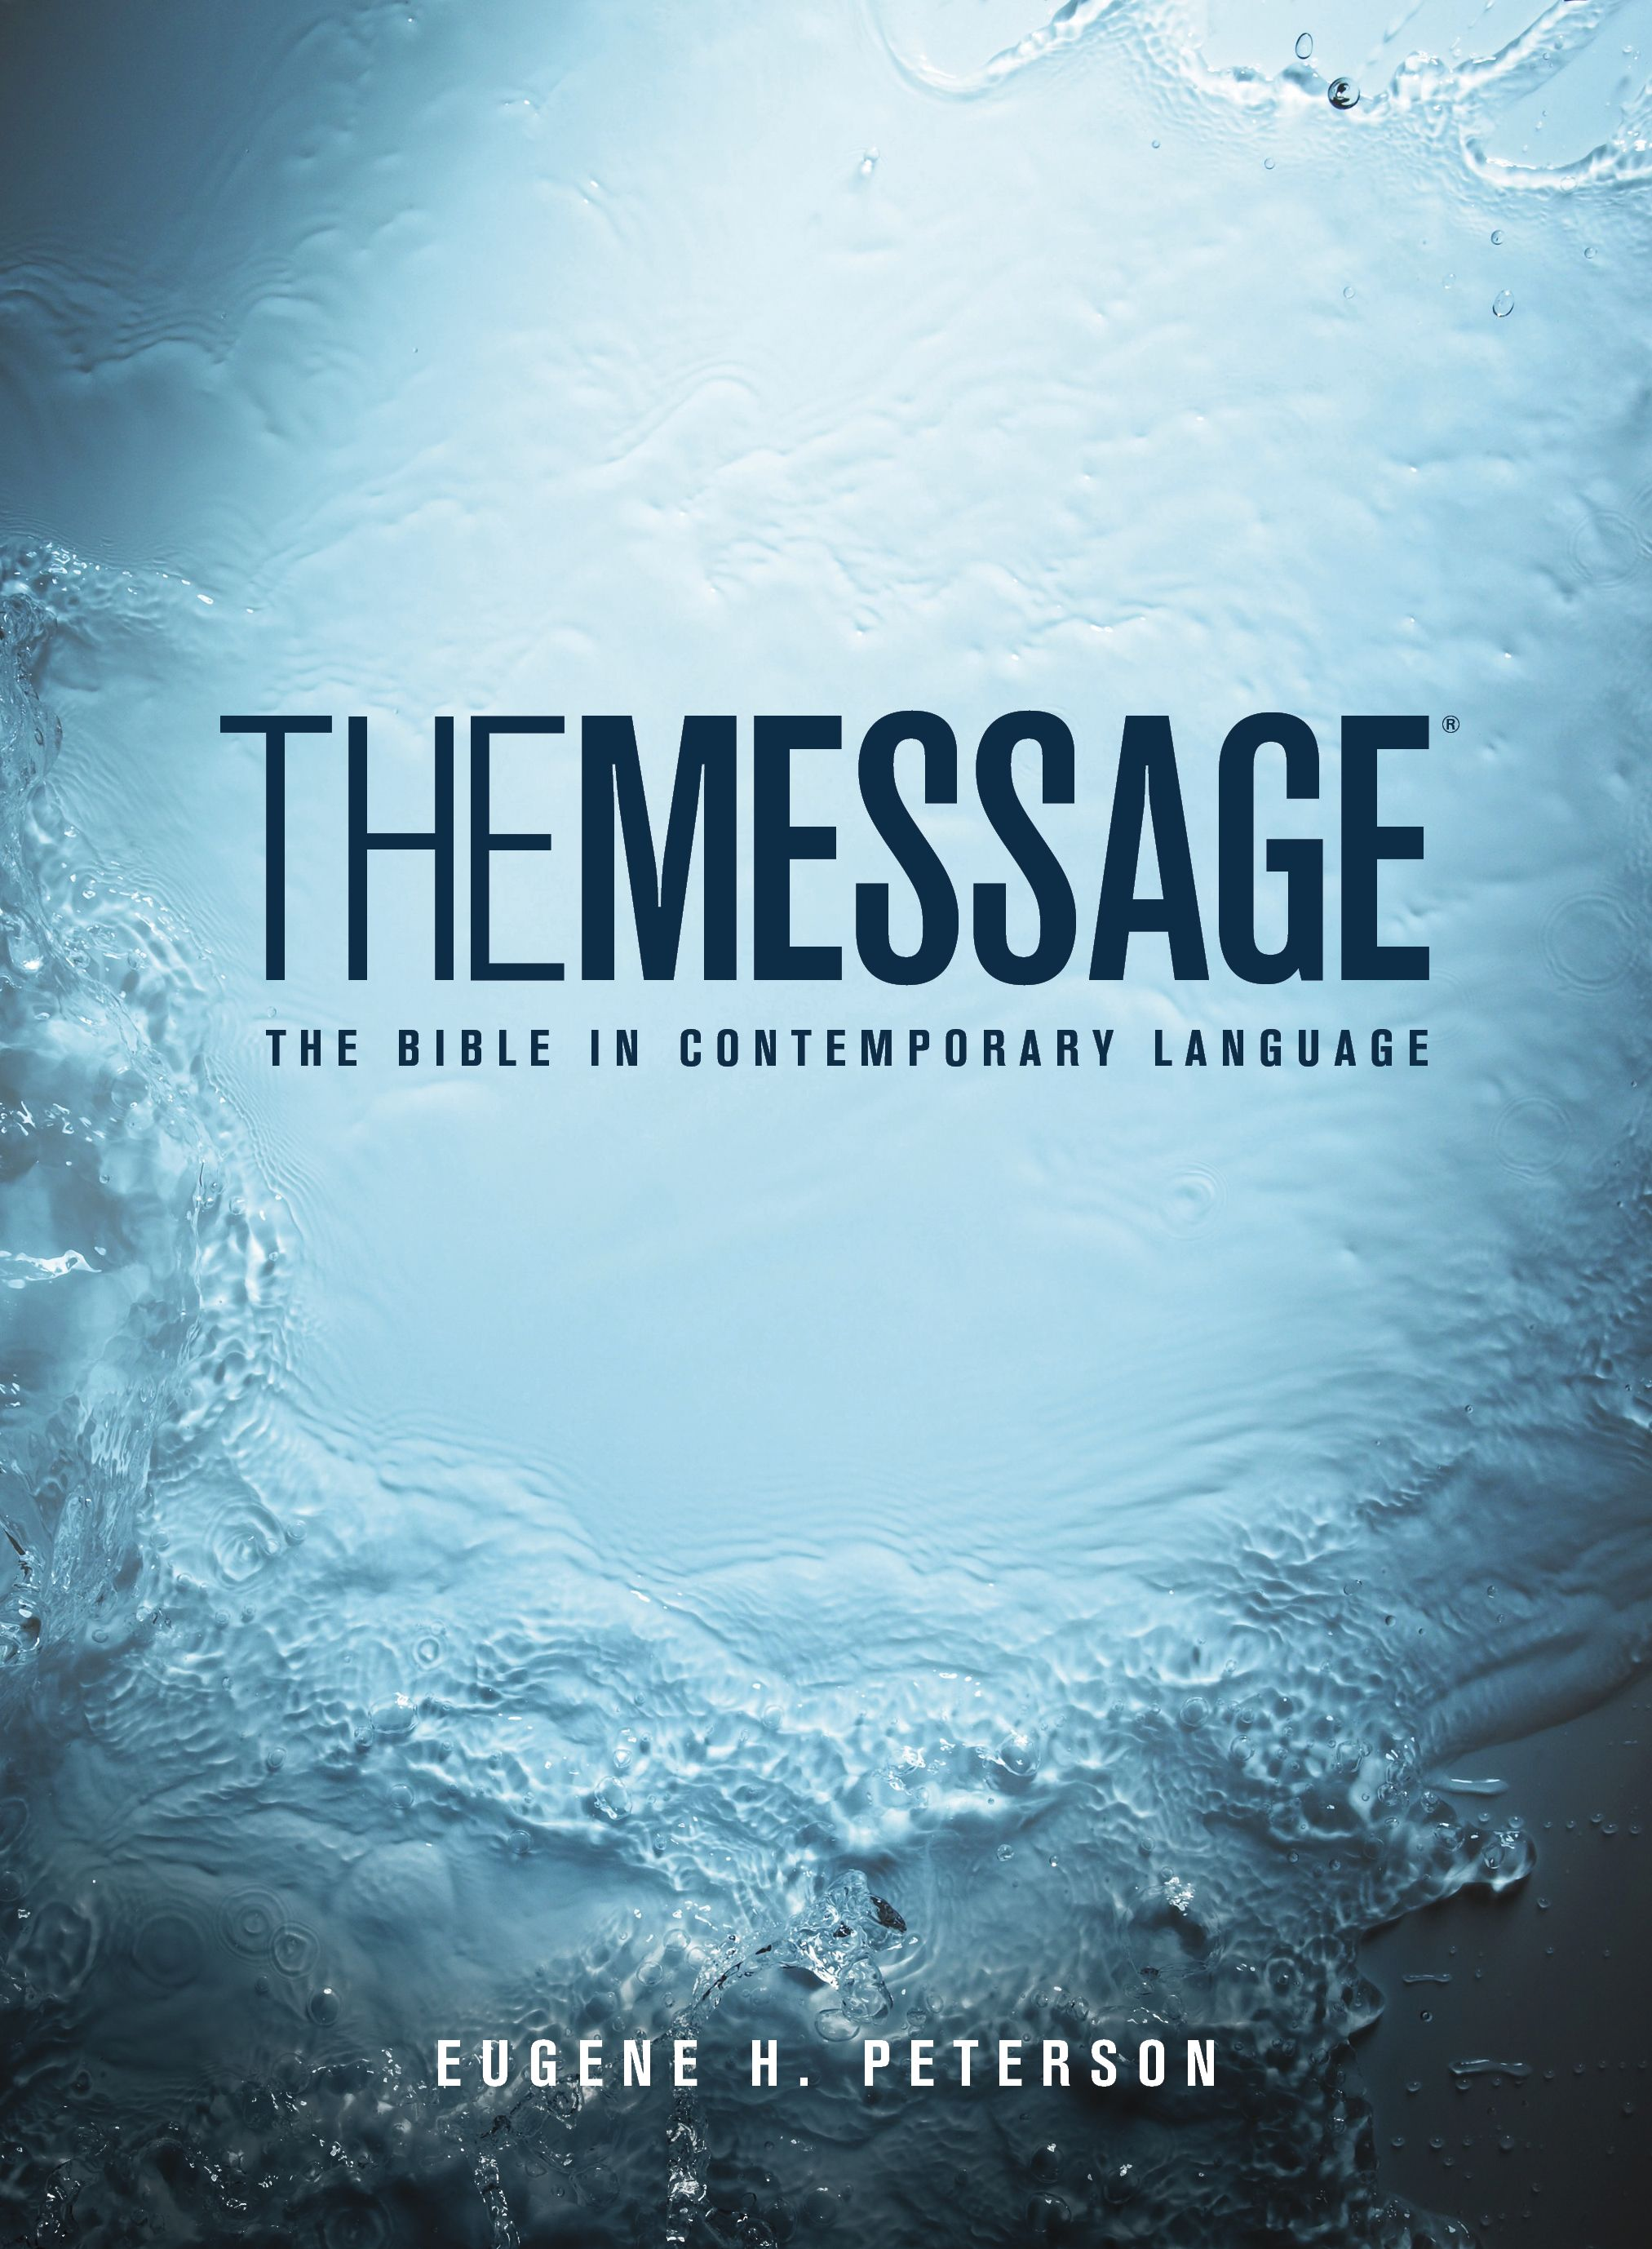 Plunged Into A World Of Presence Message Bible Translations I The Translation Or Paraphrase